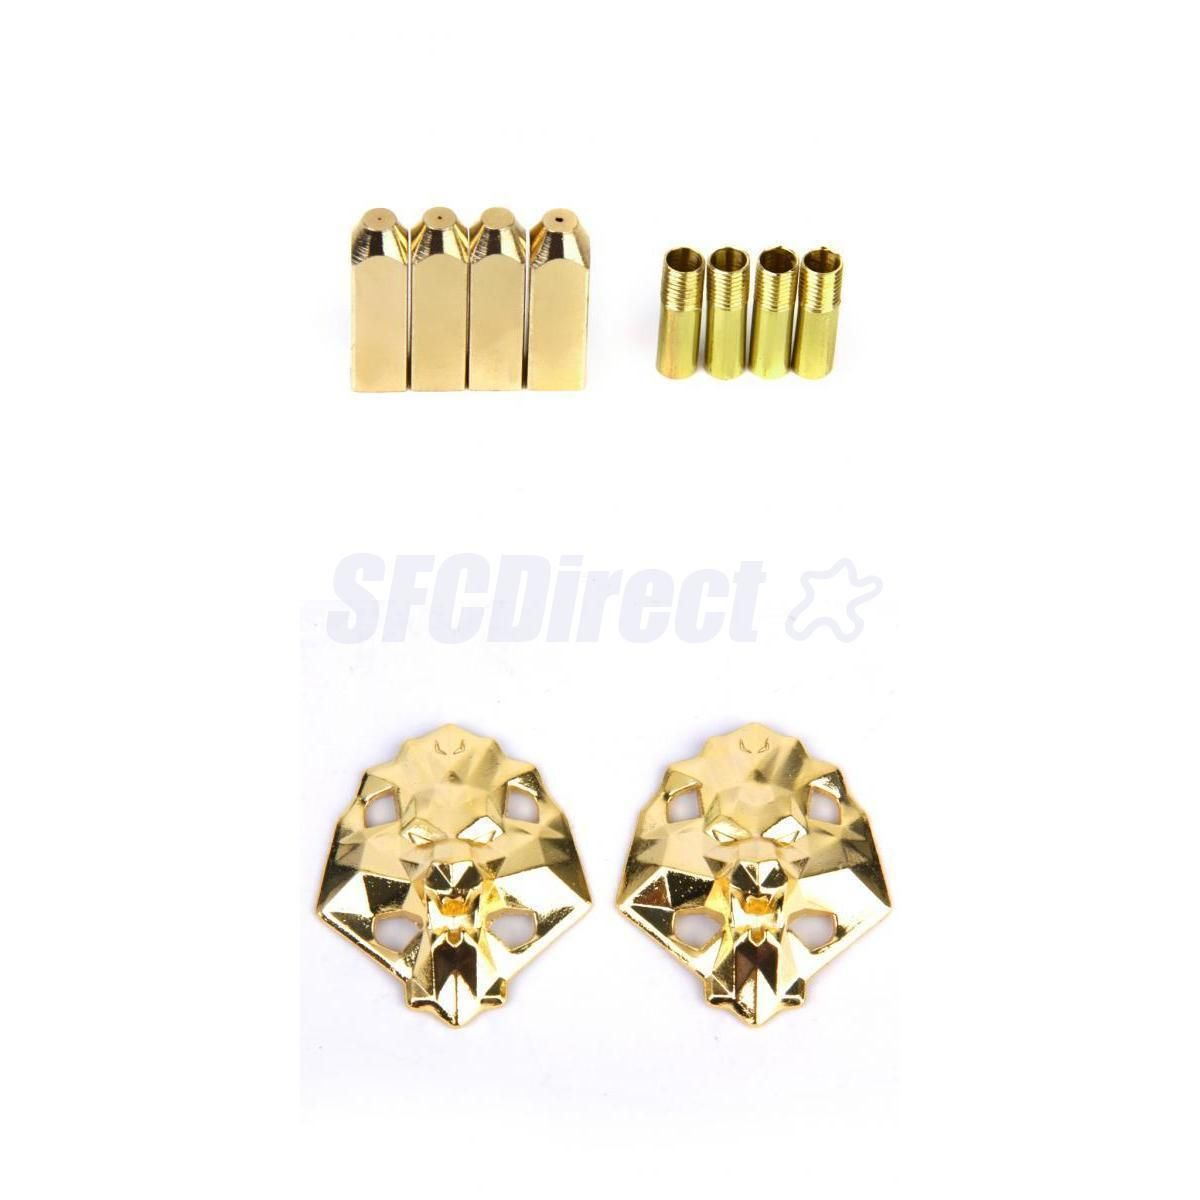 GOLD METAL LION HEAD LACE LOCK /& 2PRS SCREW ON AGLET TIPS FOR  LEBRON SHOES